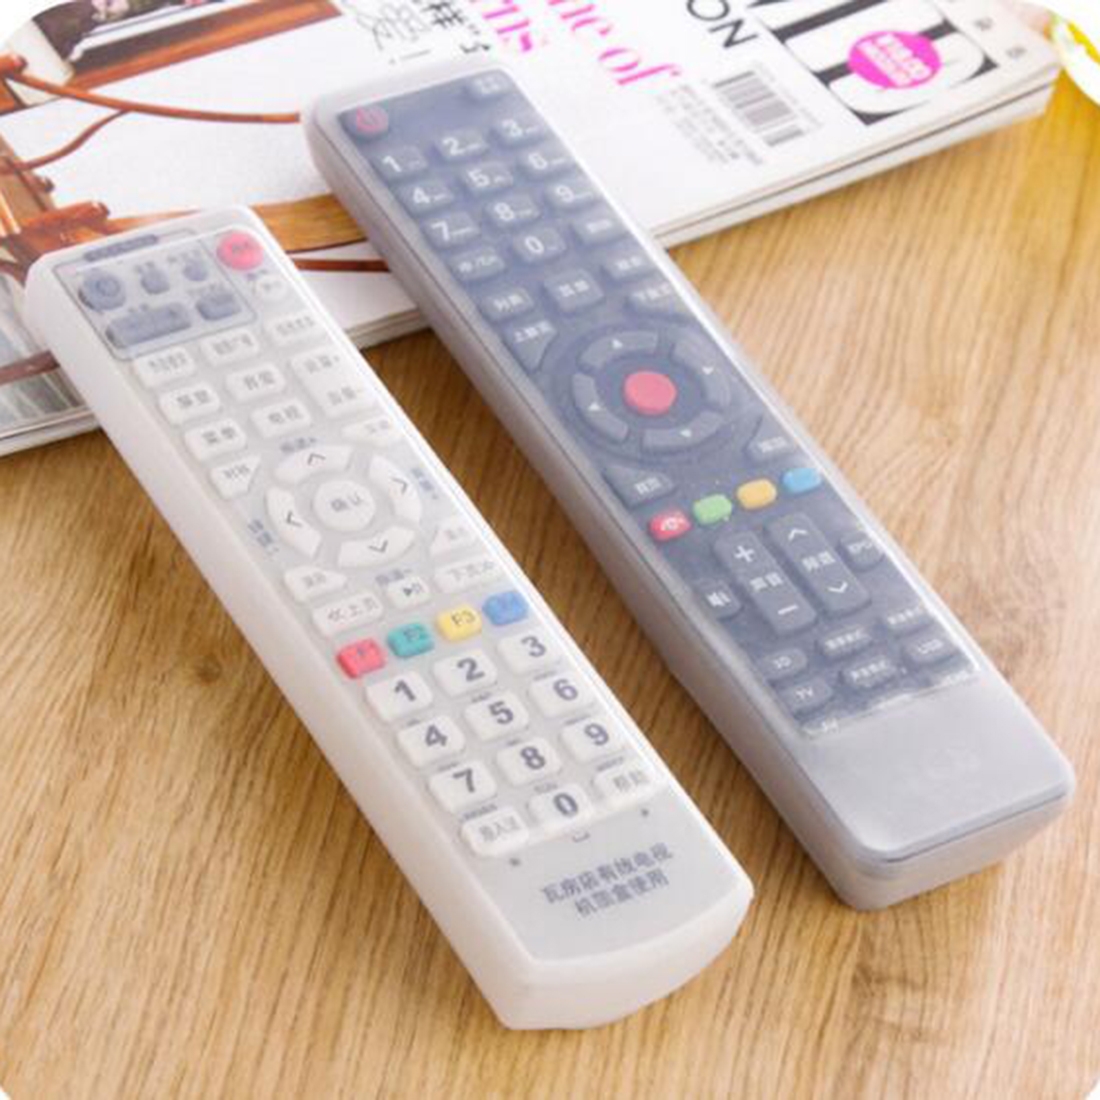 1Pc Transparent Silicone TV Remote Control Cover Dust Cover Protective Case Cover Waterproof Dust Protector Pouch Storage Bags